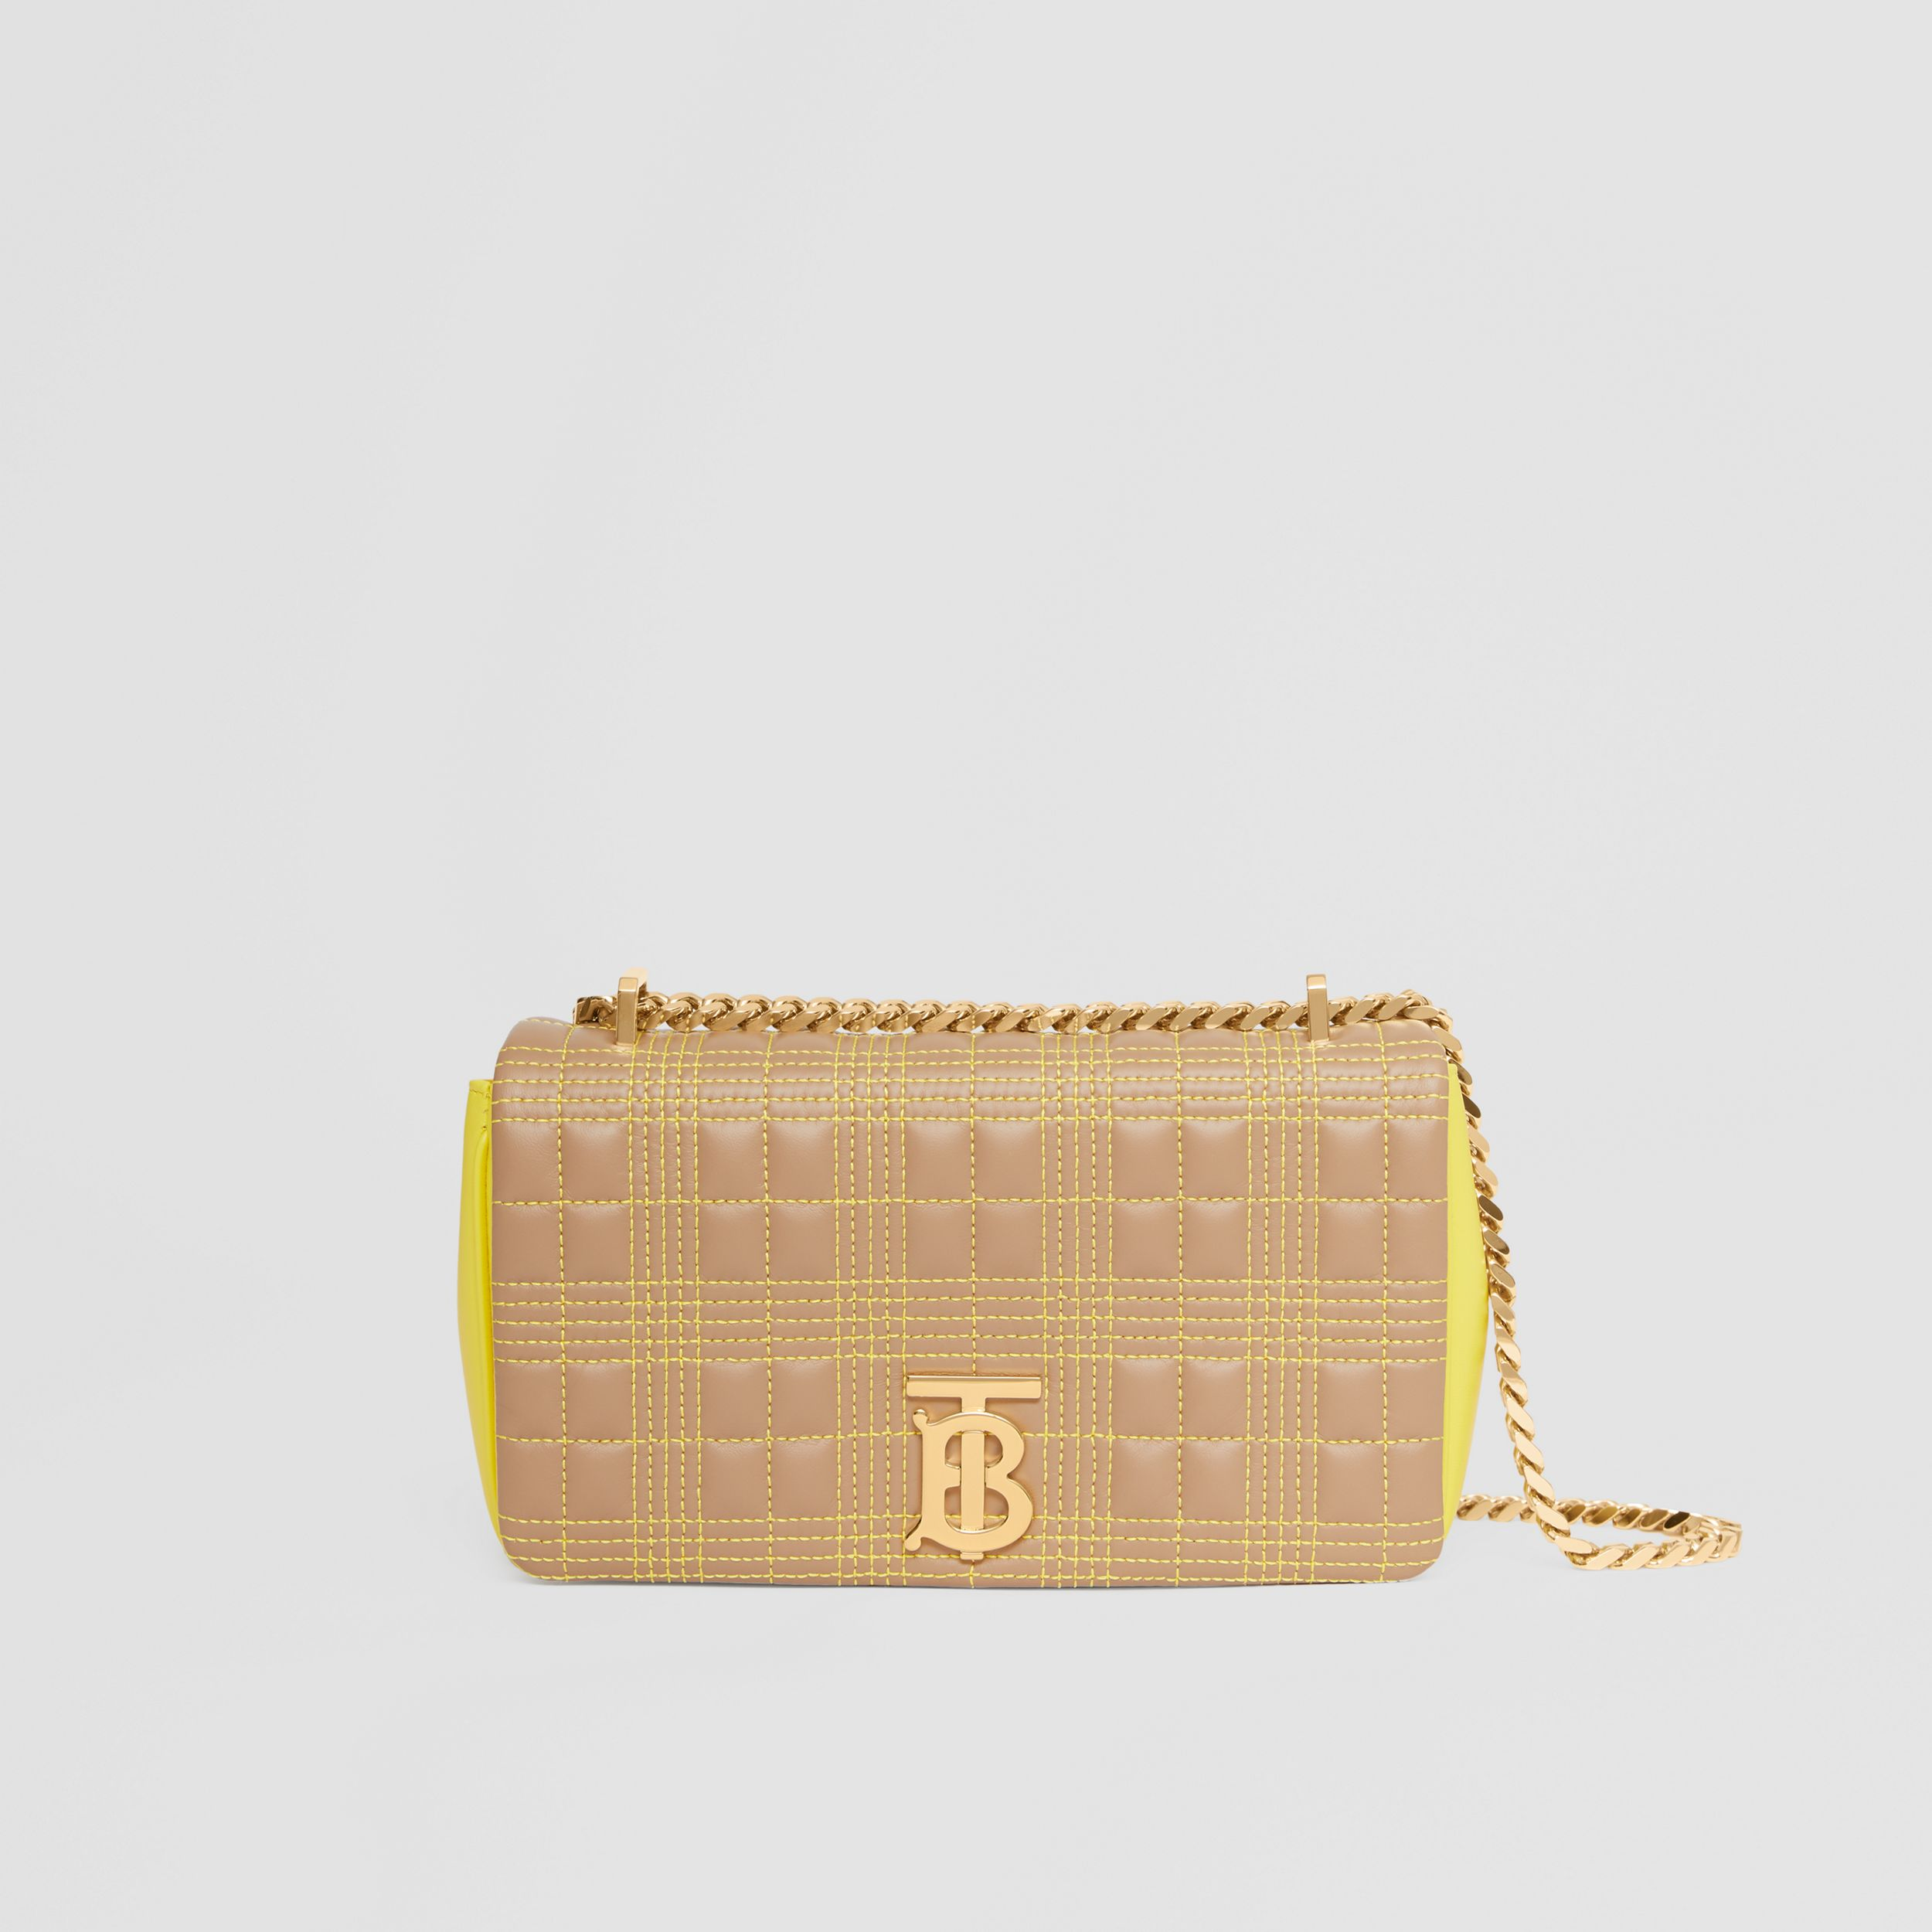 Small Quilted Tri-tone Lambskin Lola Bag in Camel/yellow - Women | Burberry - 1